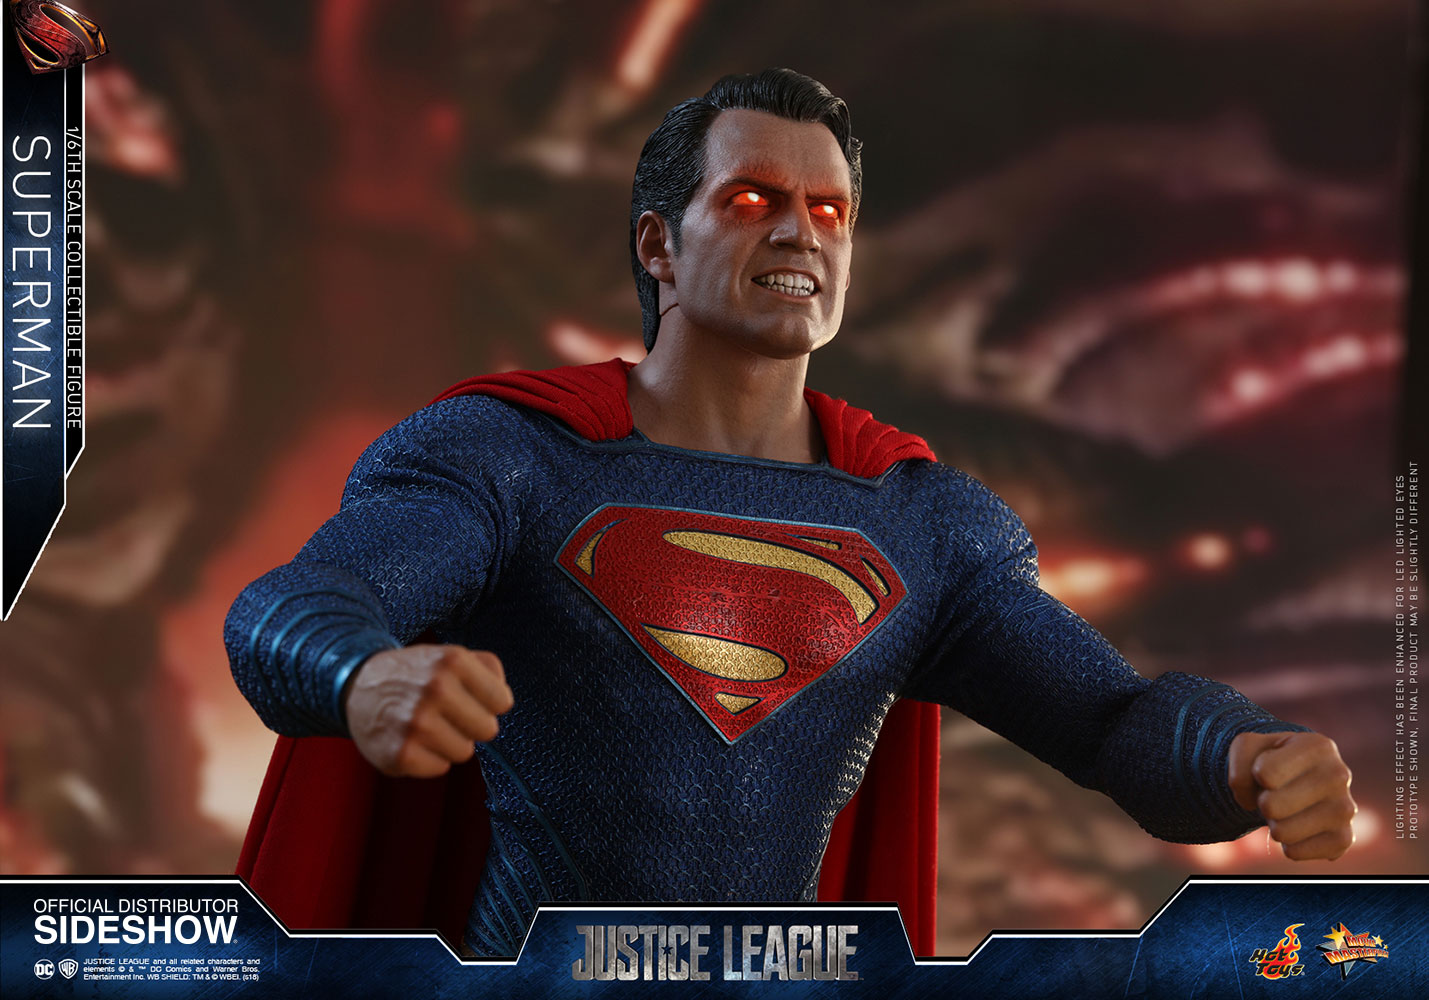 dc-comics-justice-league-superman-sixth-scale-figure-hot-toys-903116-20